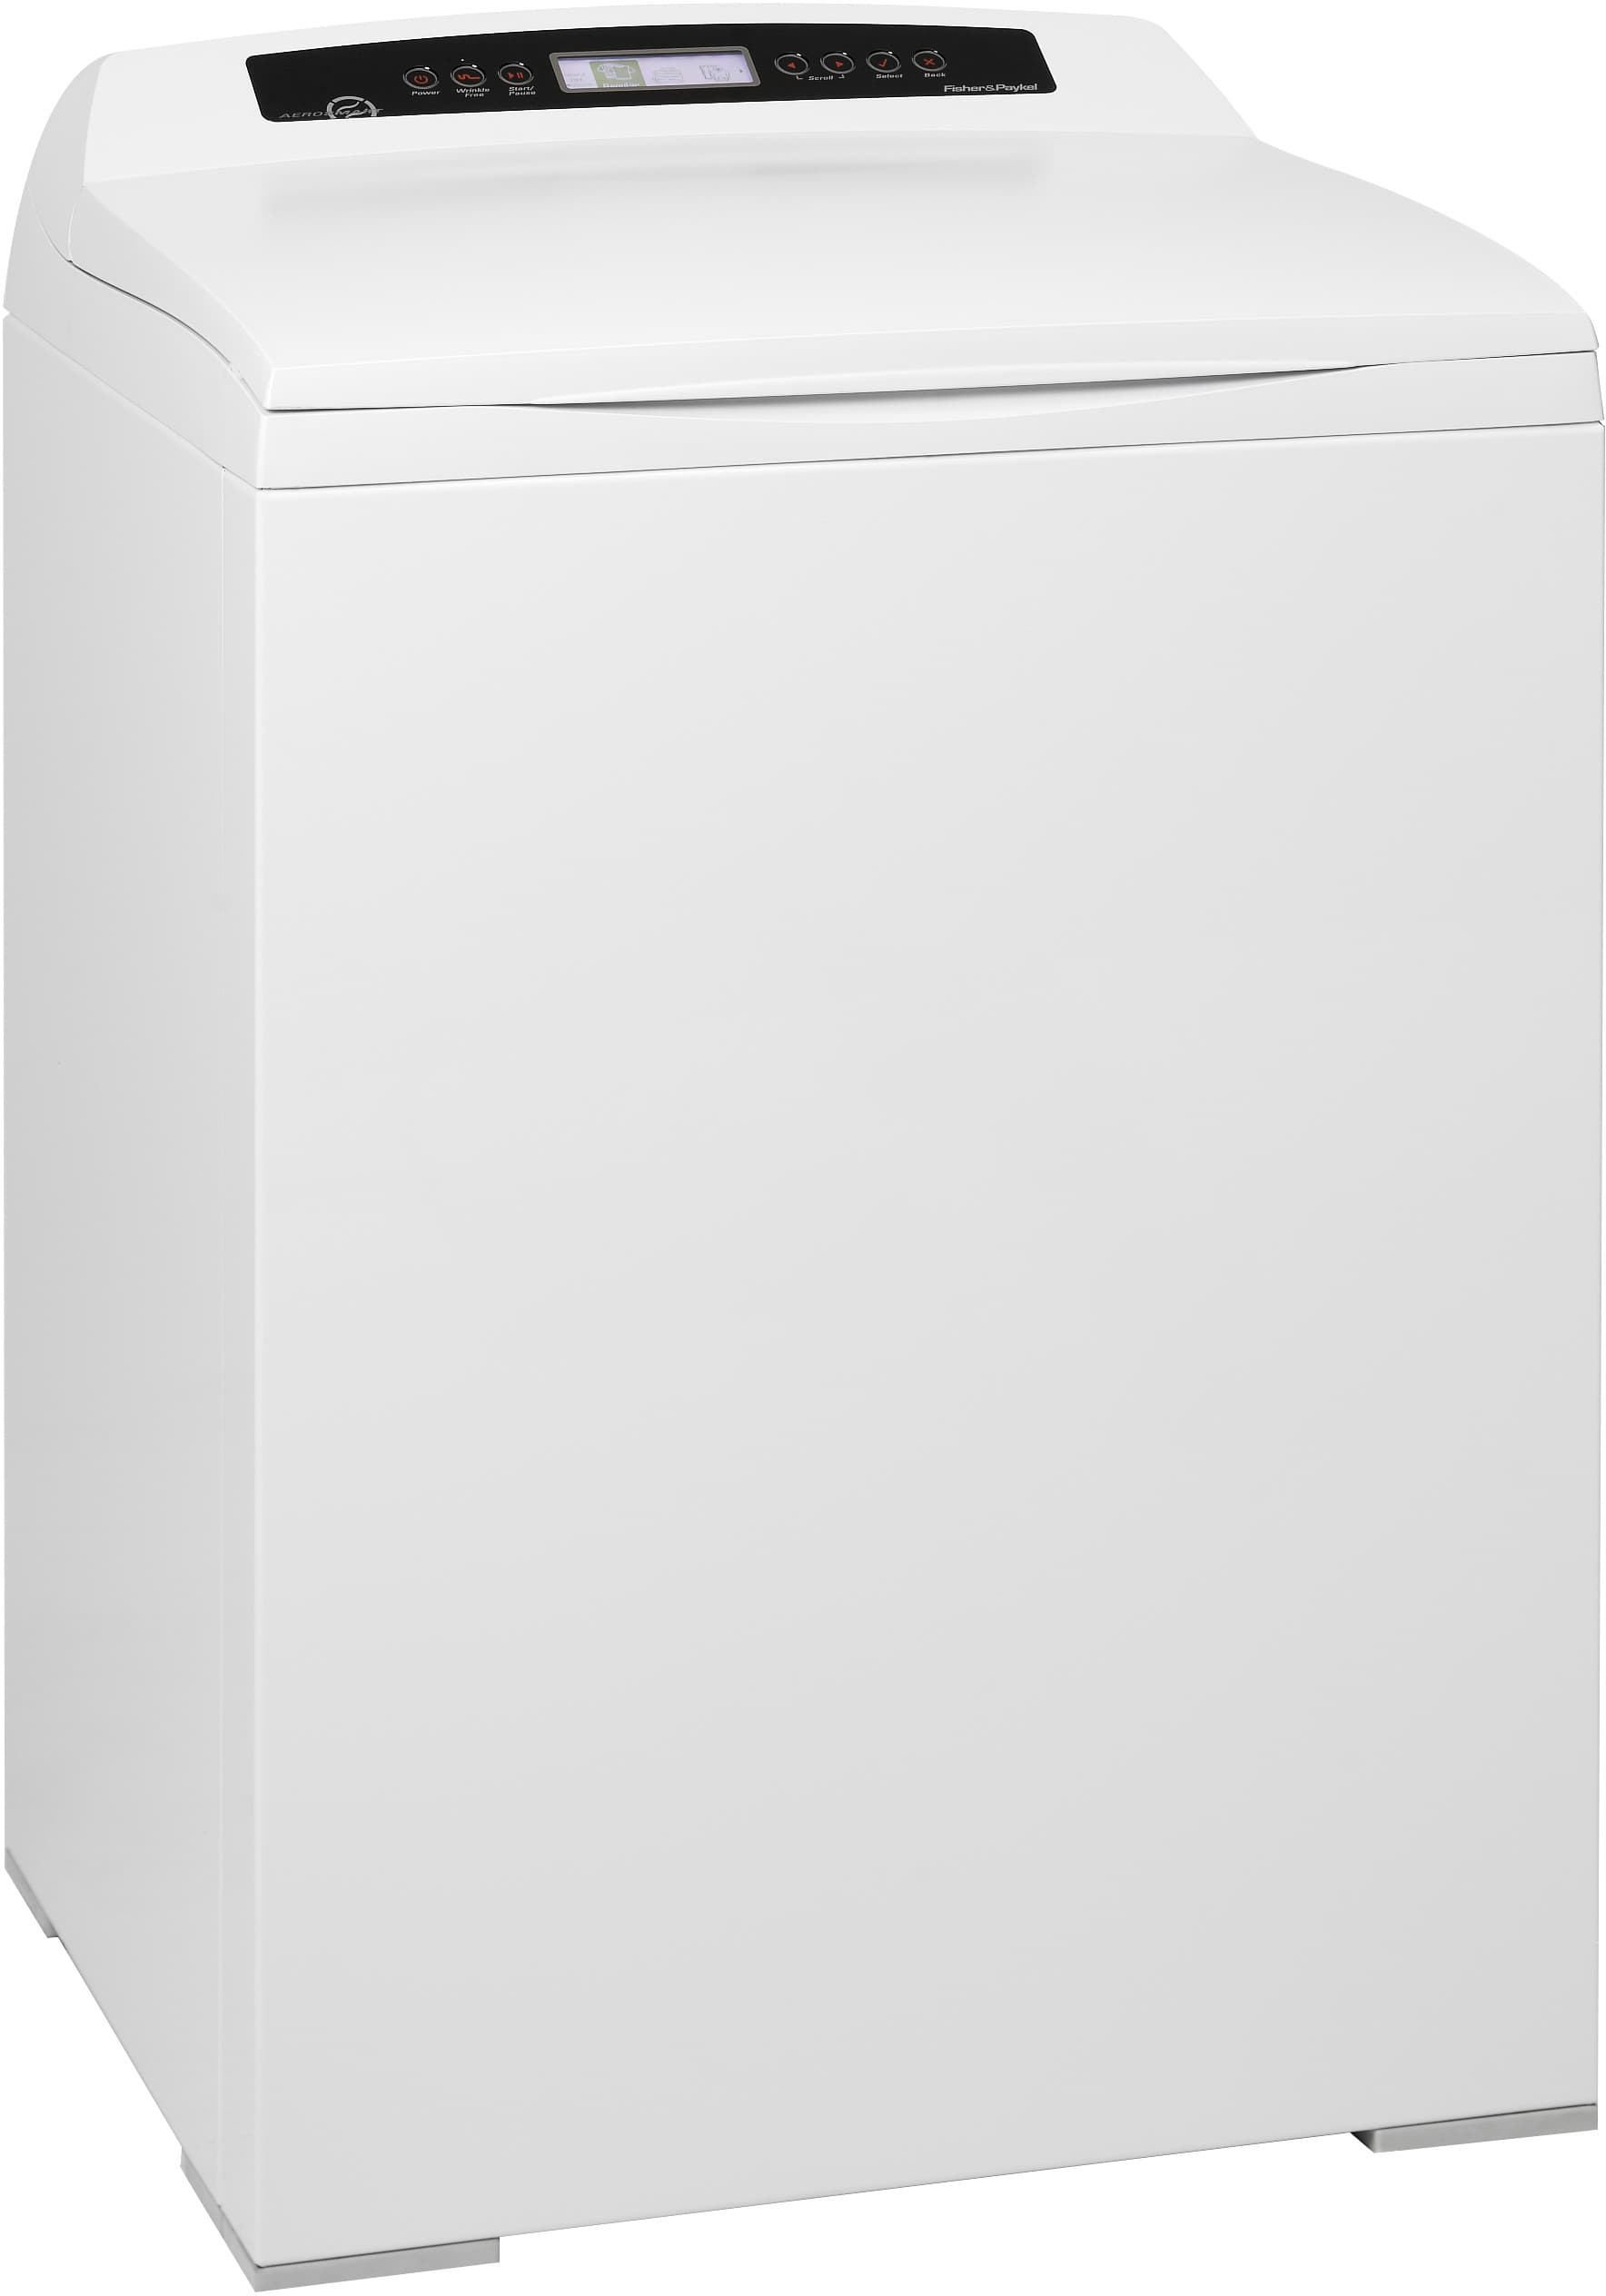 Fisher Amp Paykel De27cw1 27 Inch Top Load Aerosmart